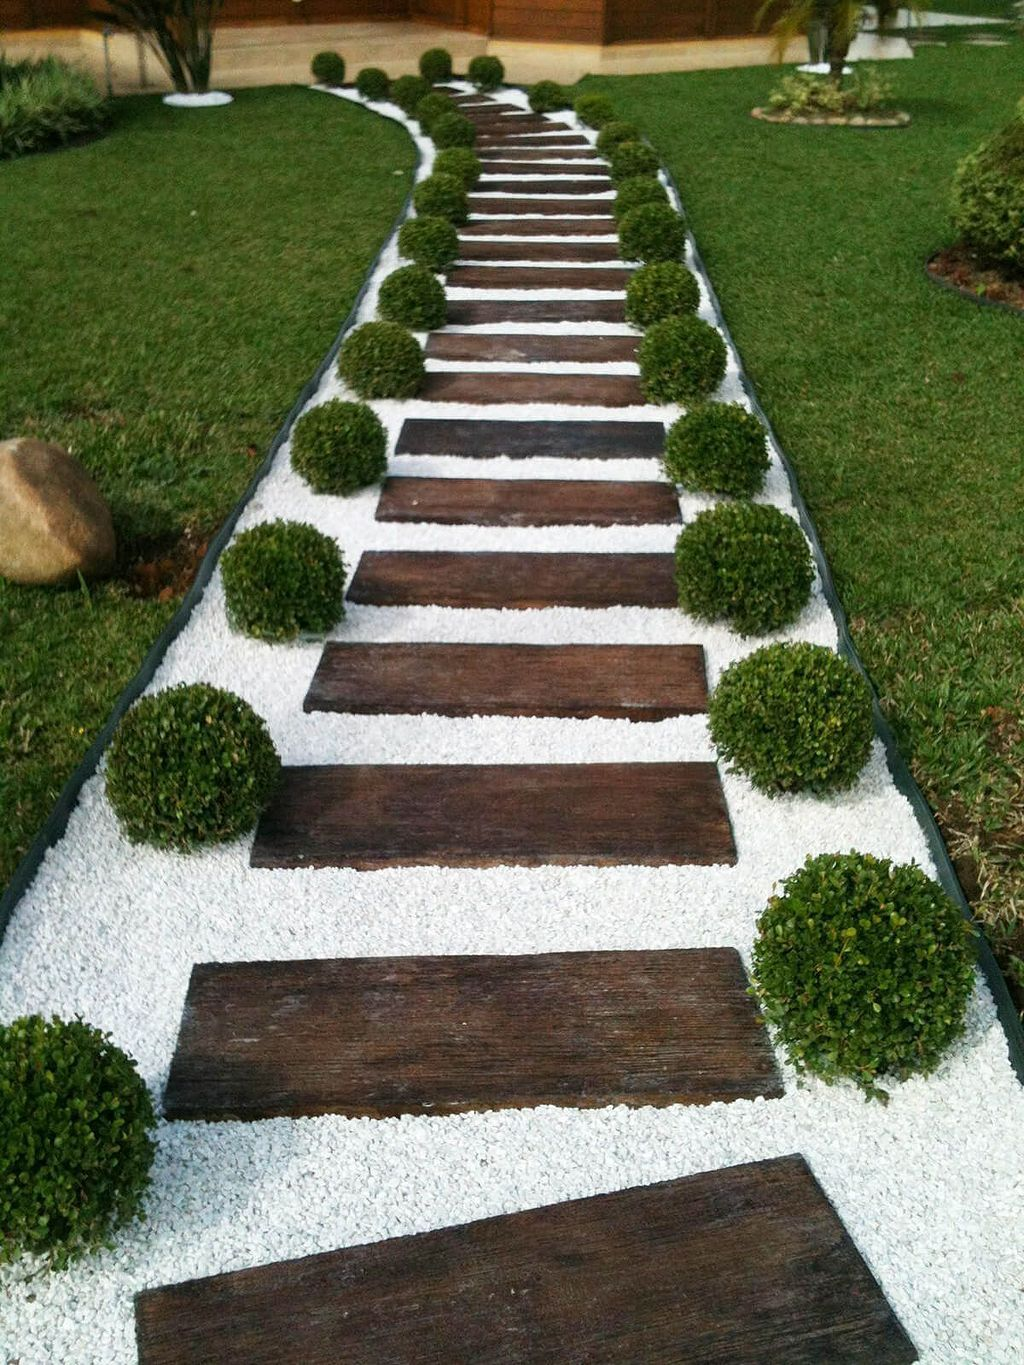 Toll Gorgeous 50+ Fascinating Inspiration Modern Walkways Pavers For Front Yard  Ideas Https://